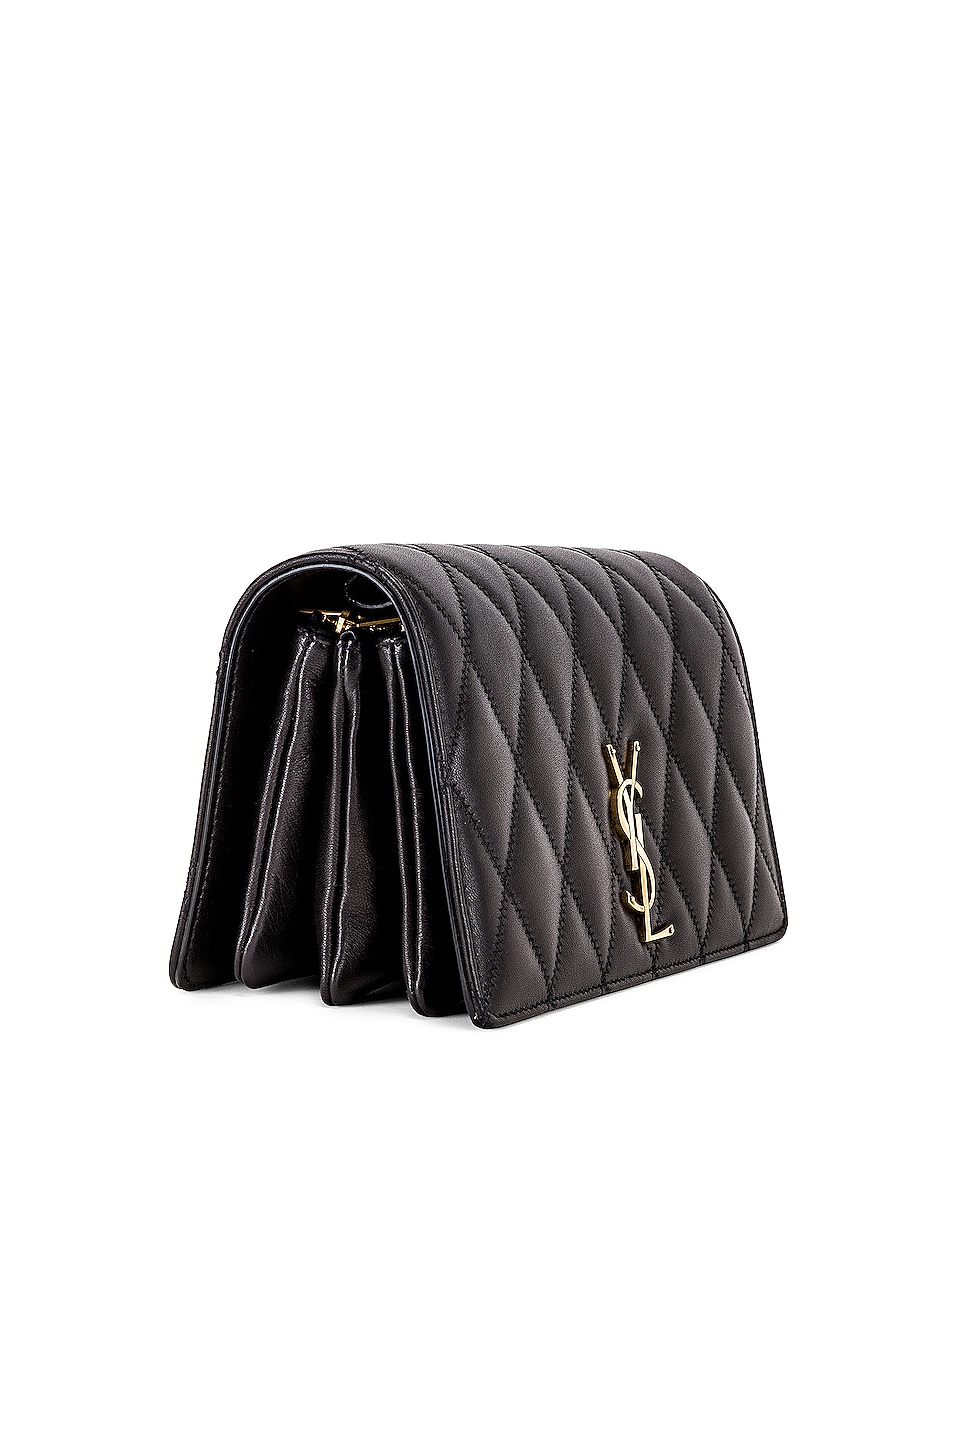 Image 4 of Saint Laurent Angie Chain Bag in Black